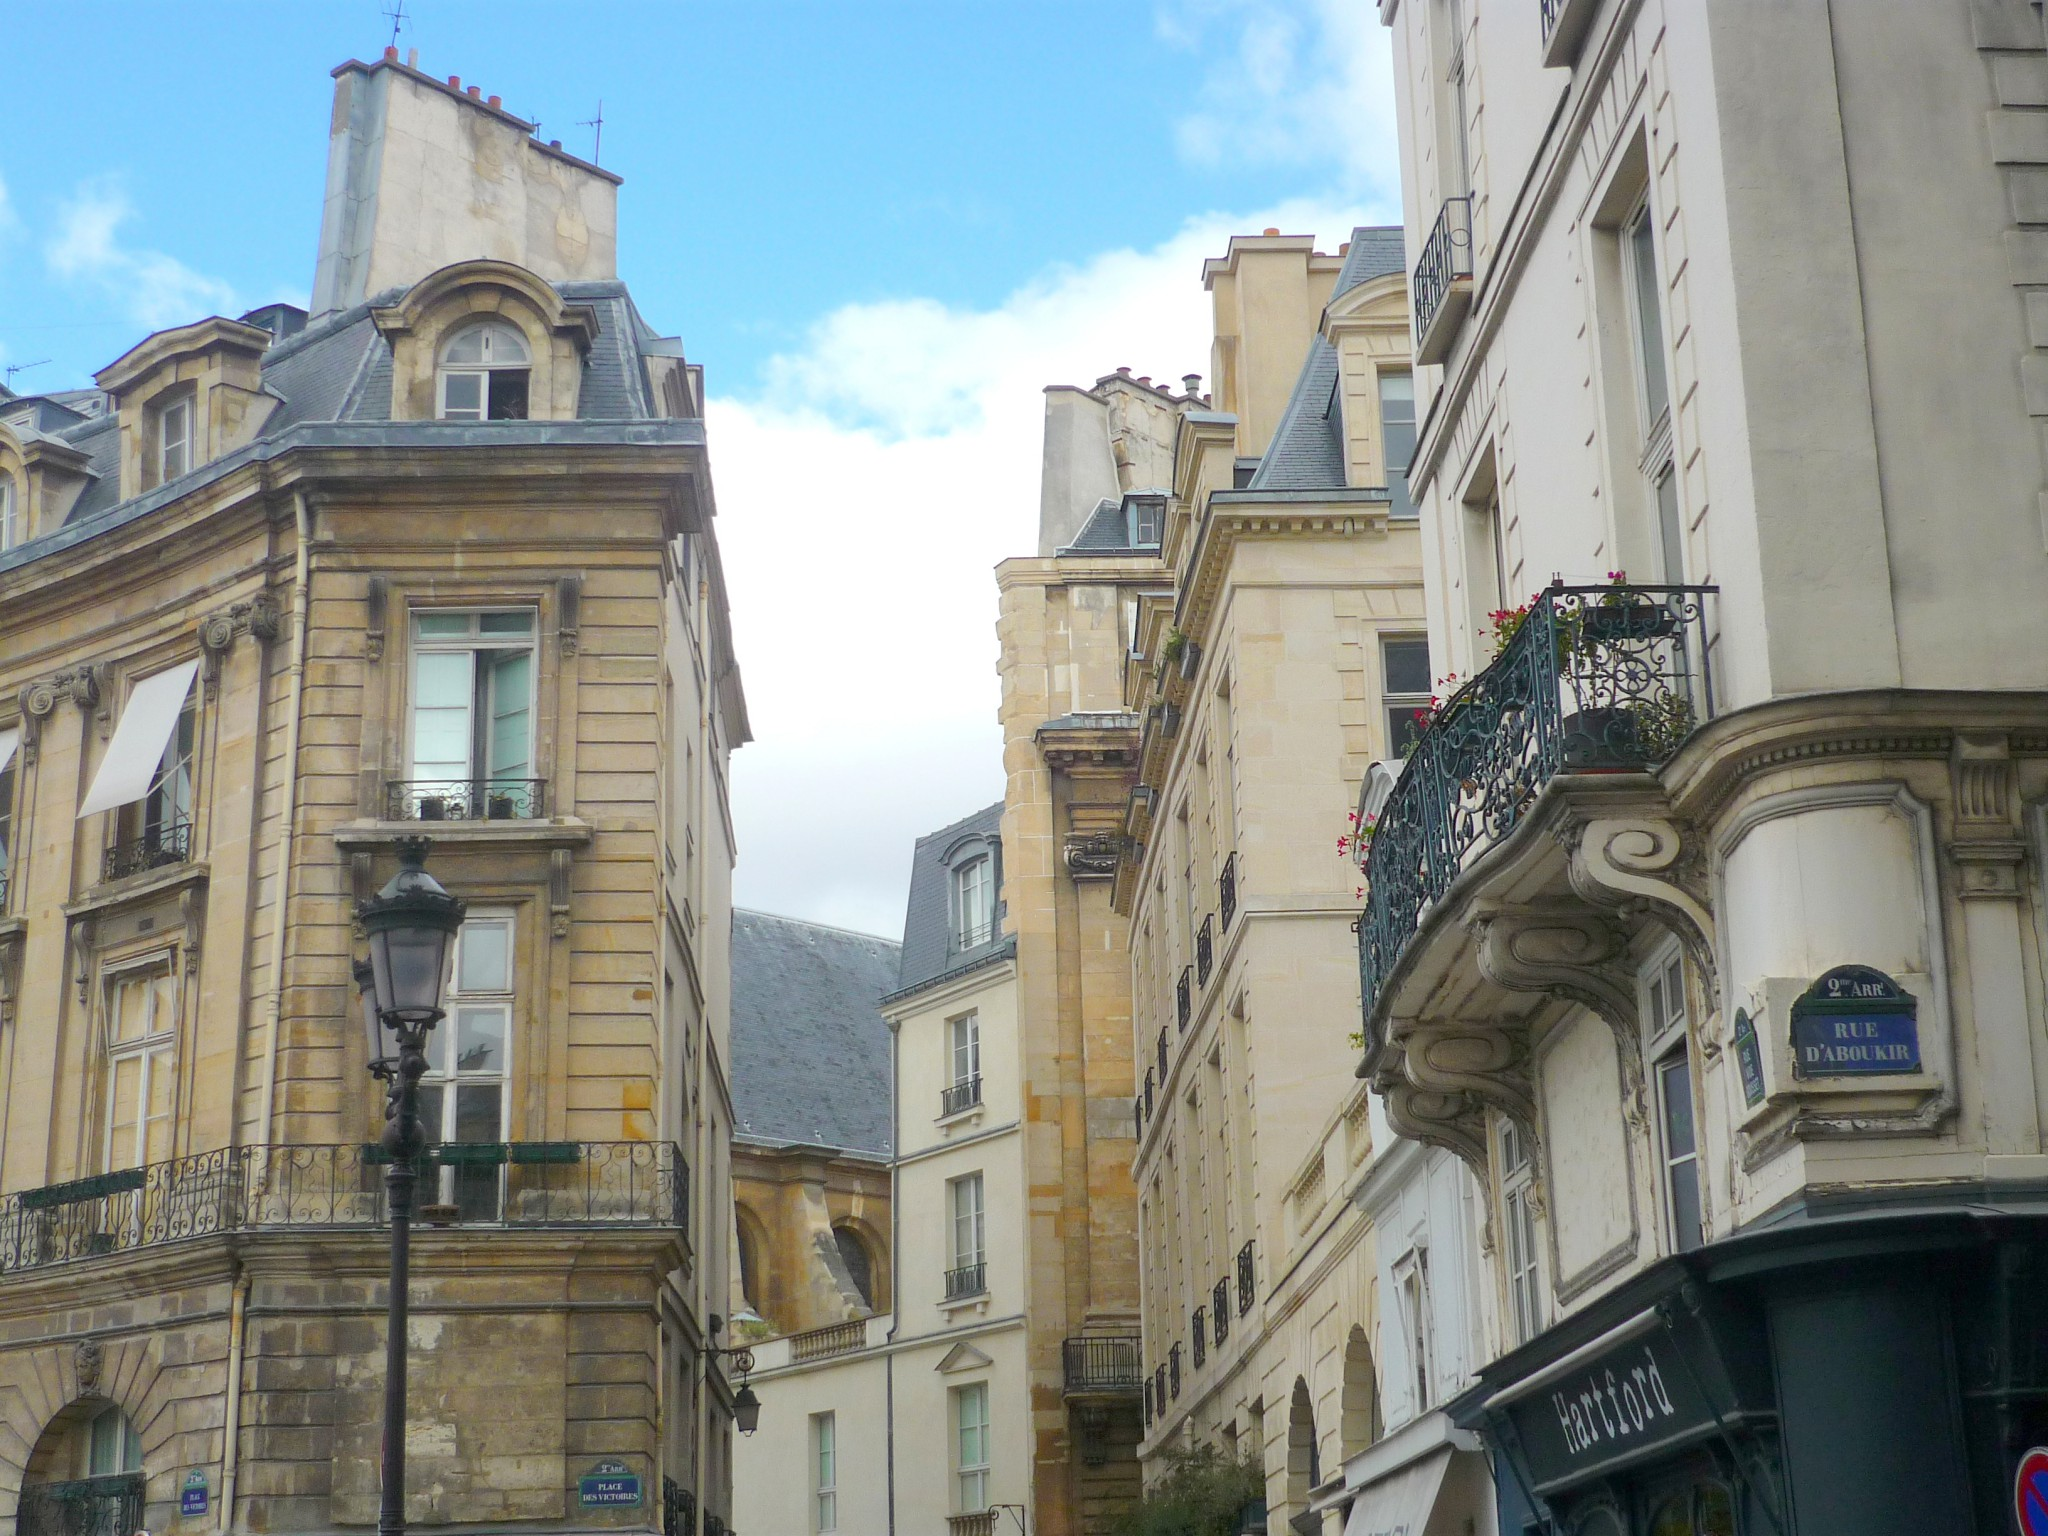 The Arrondissement of Paris - Rue d'Aboukir © French Moments